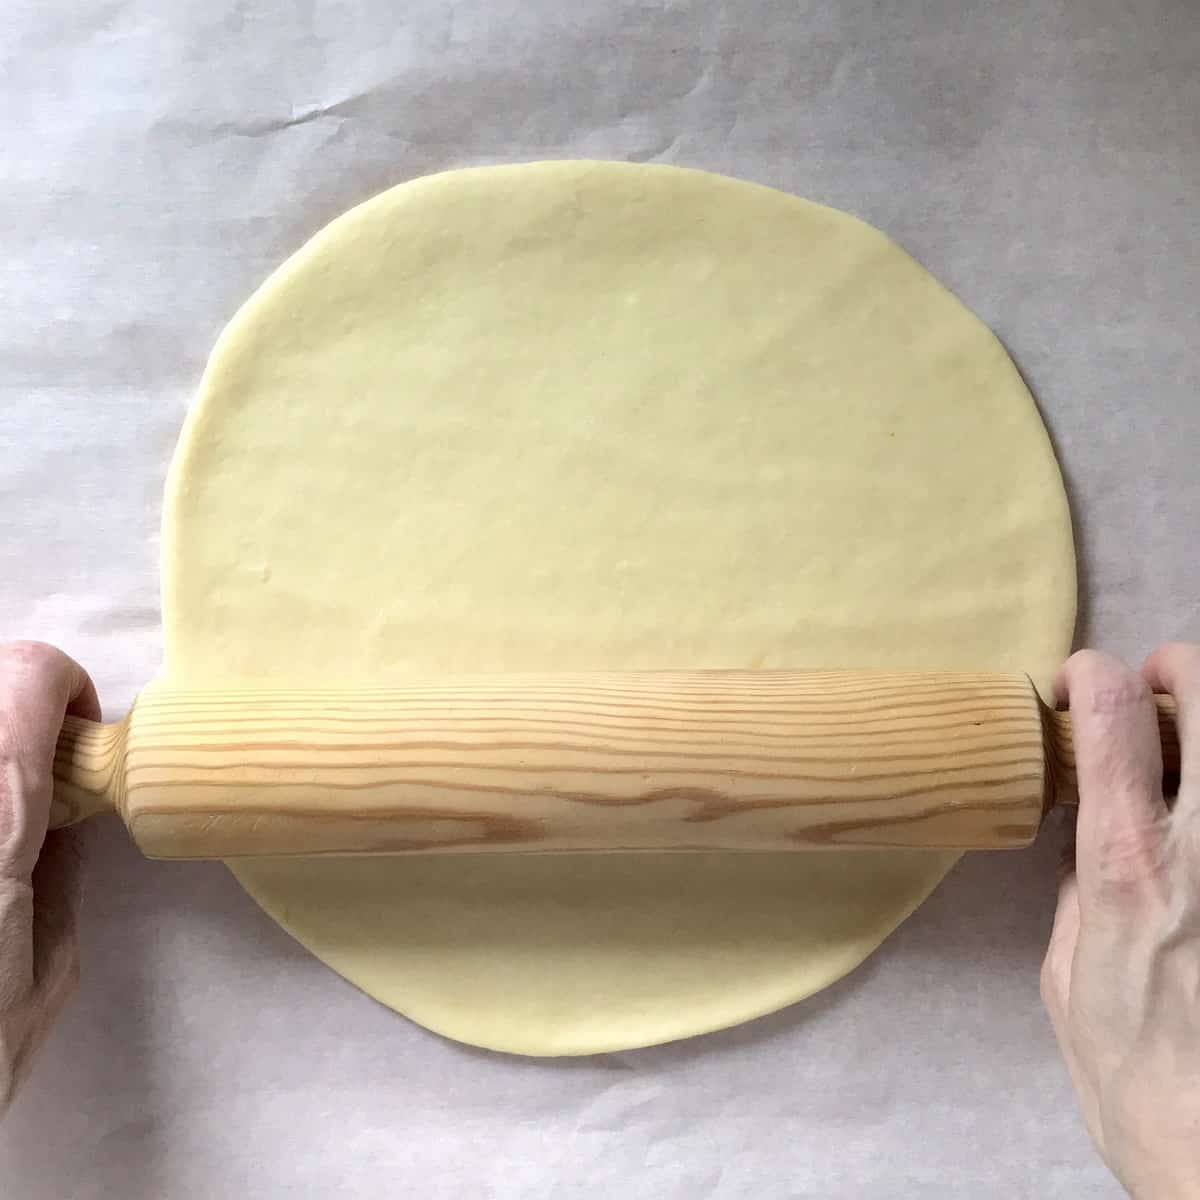 A ball of dough being rolled into a circle with a rolling pin.